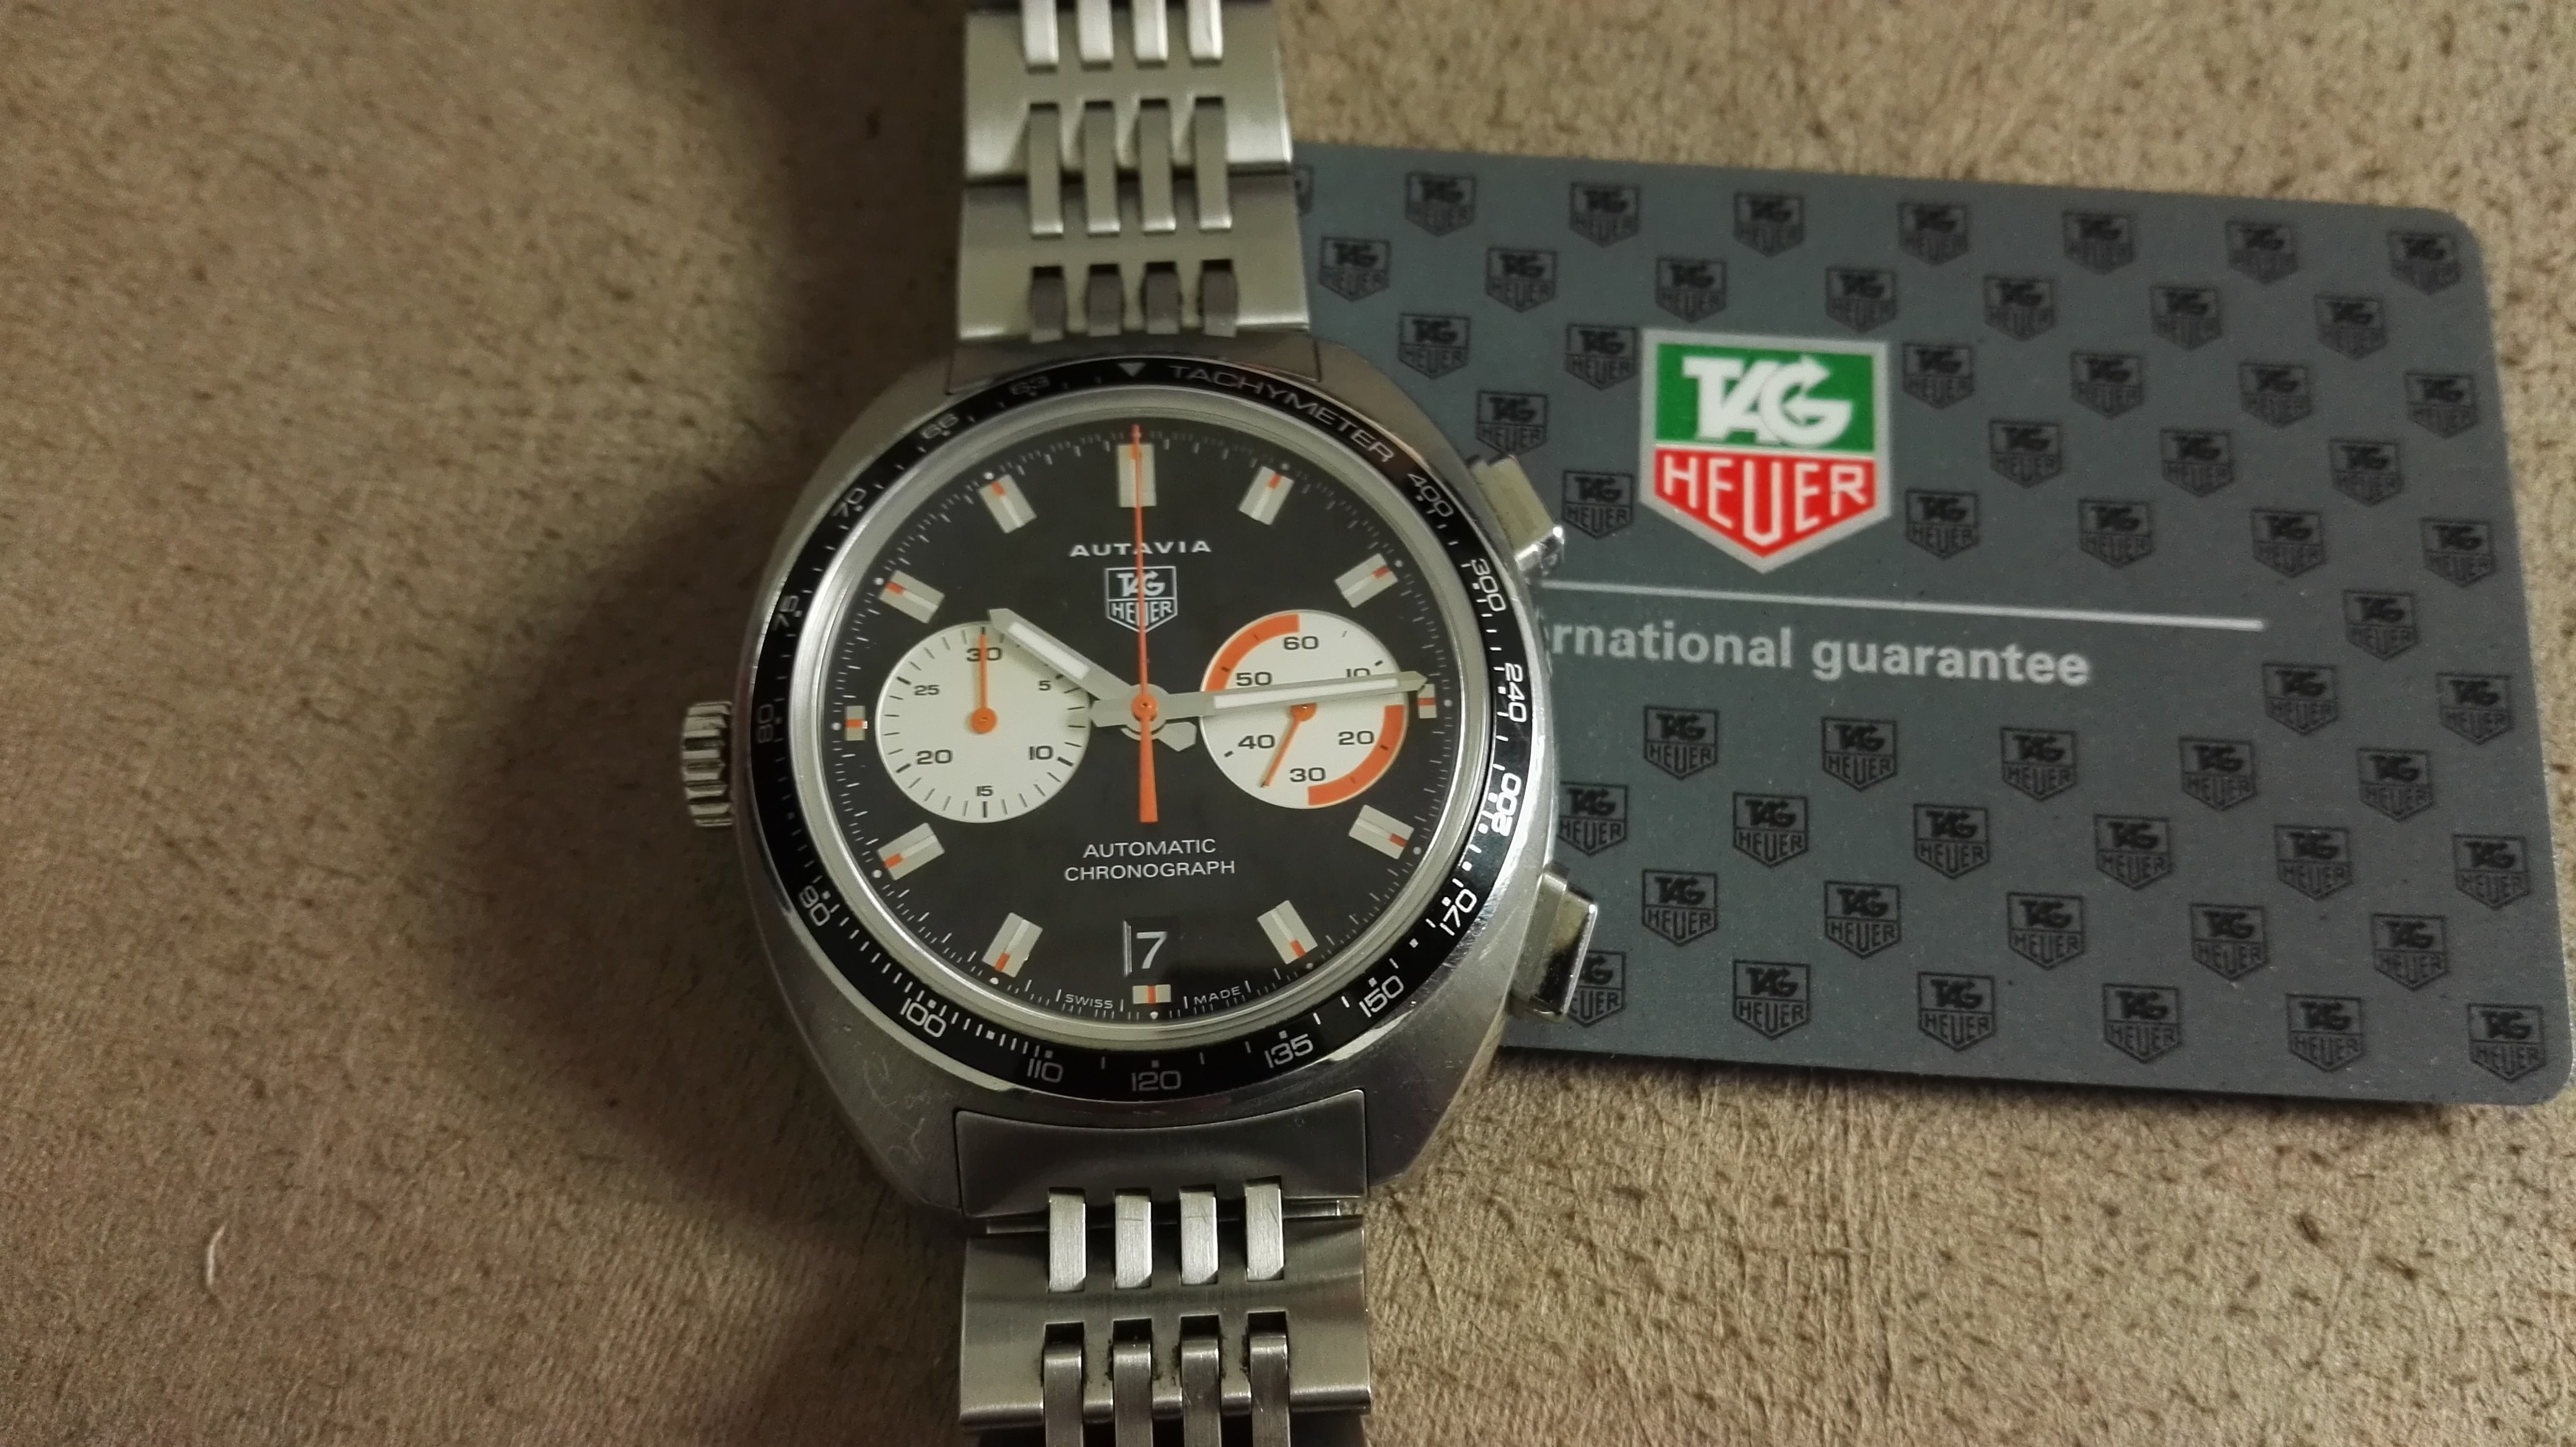 TAG Heuer Autavia Autavia Re-Edition CY2111 Watch with Stainless Steel Band | San Giorgio a Cremano